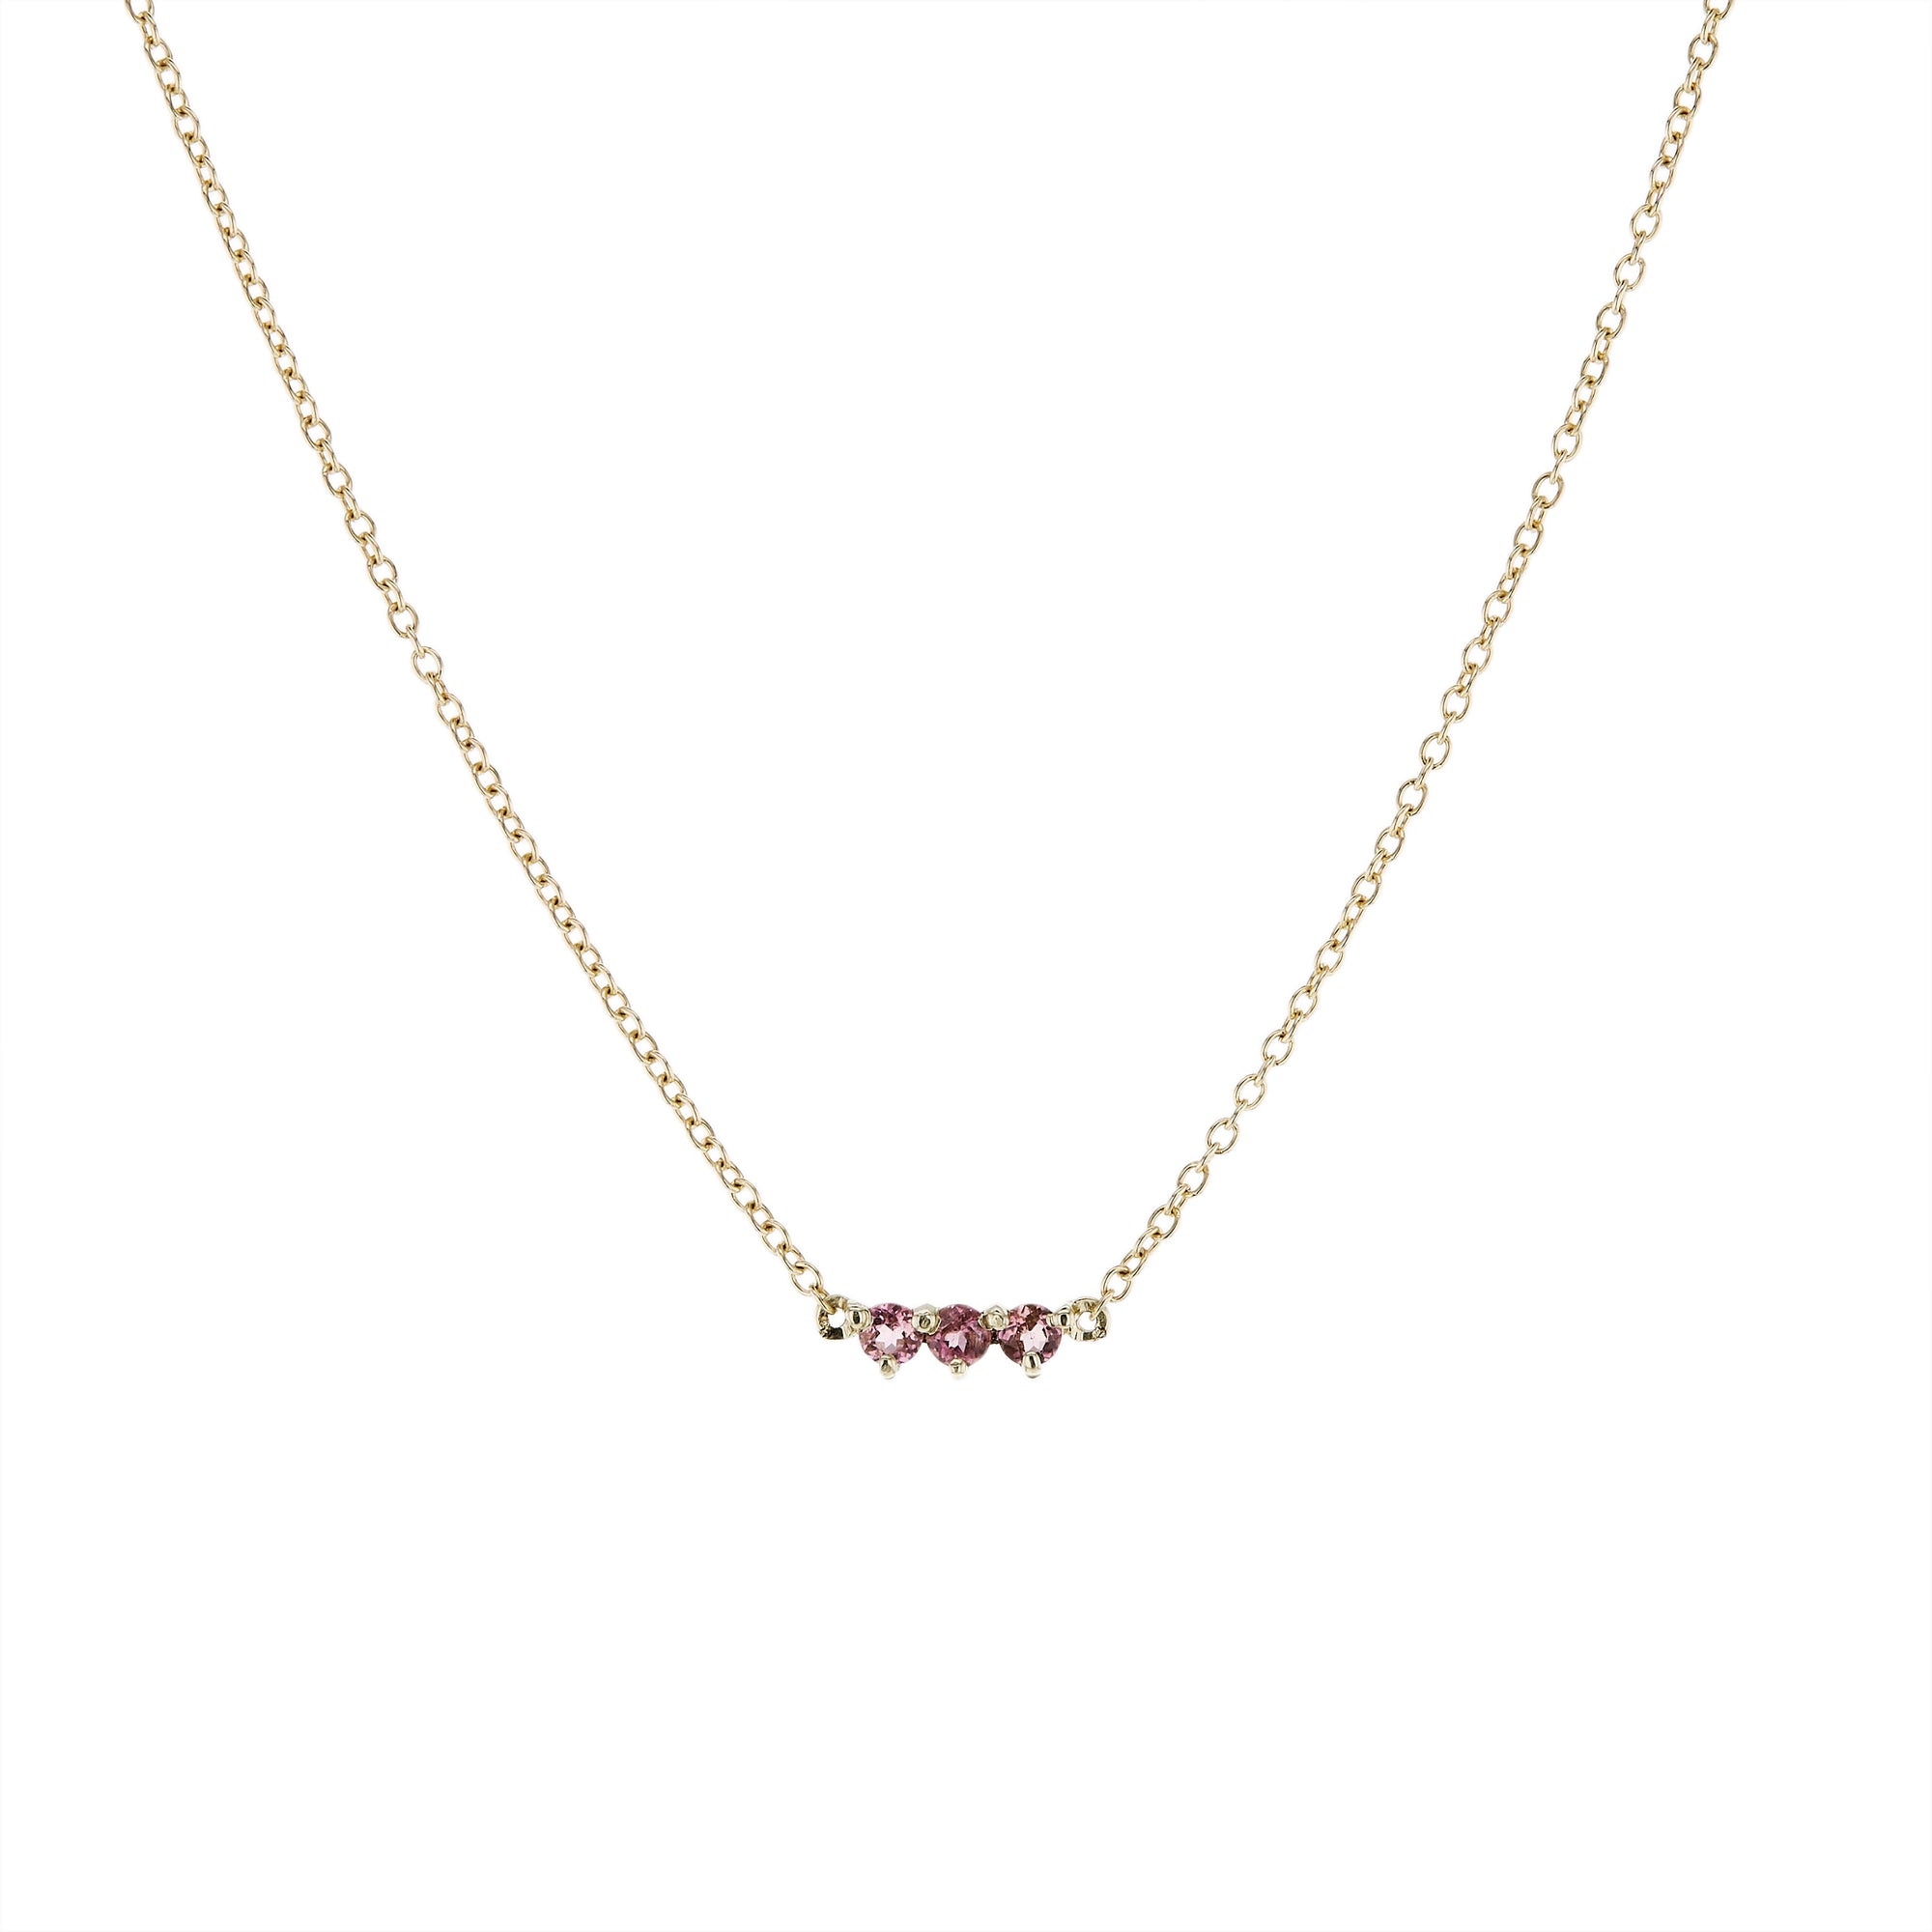 The Little Tri Pink Tourmaline Choker in 9kt Gold